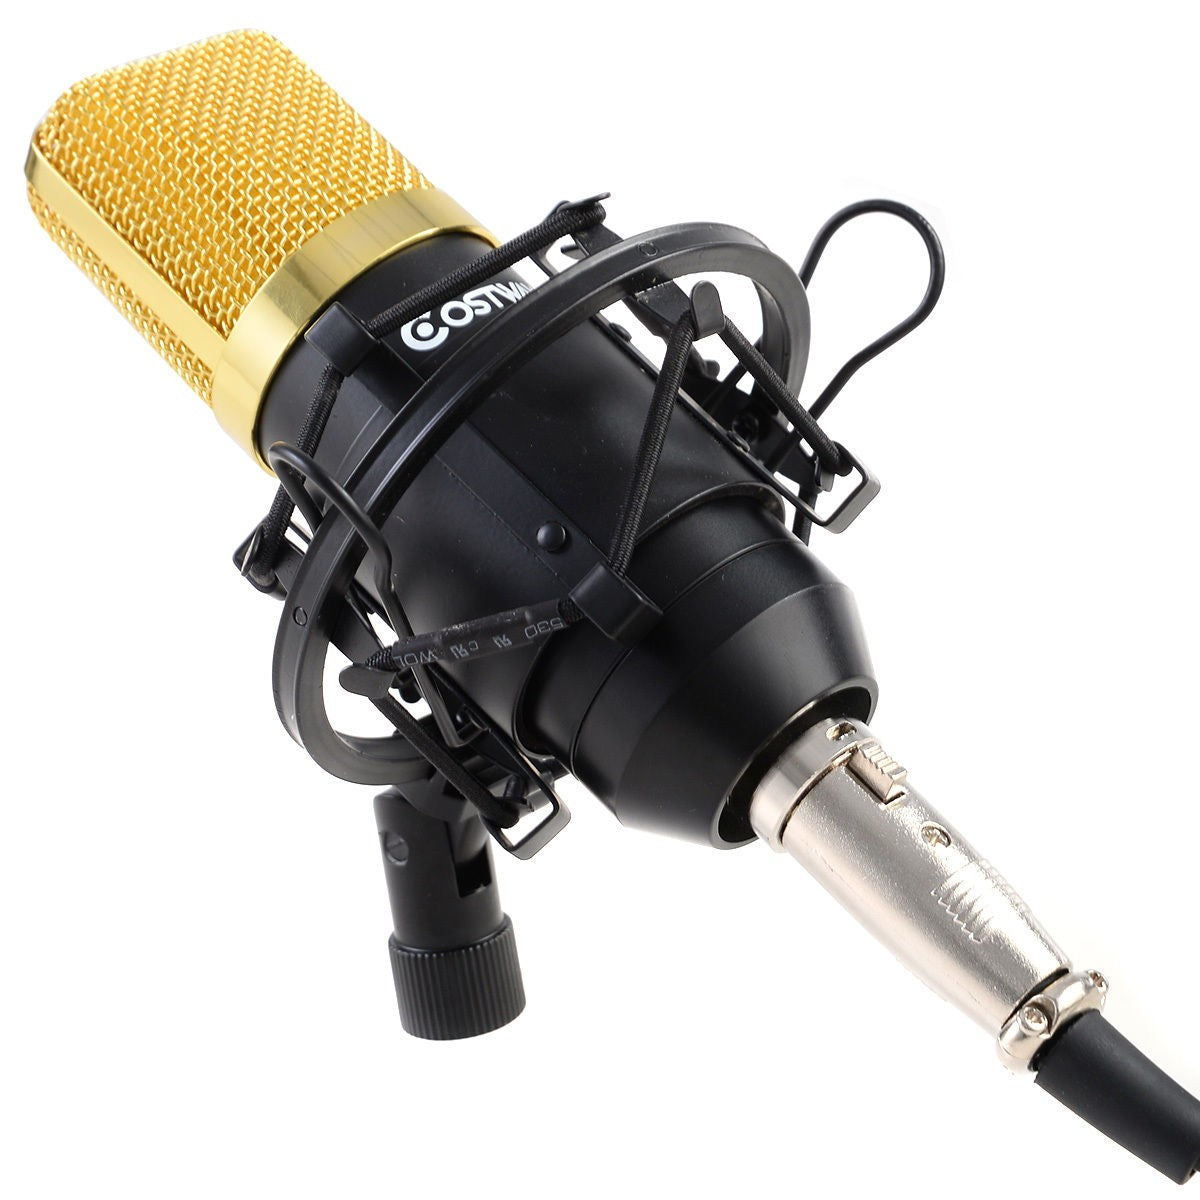 Professional Audio Condenser Microphone w/ Shock Mount